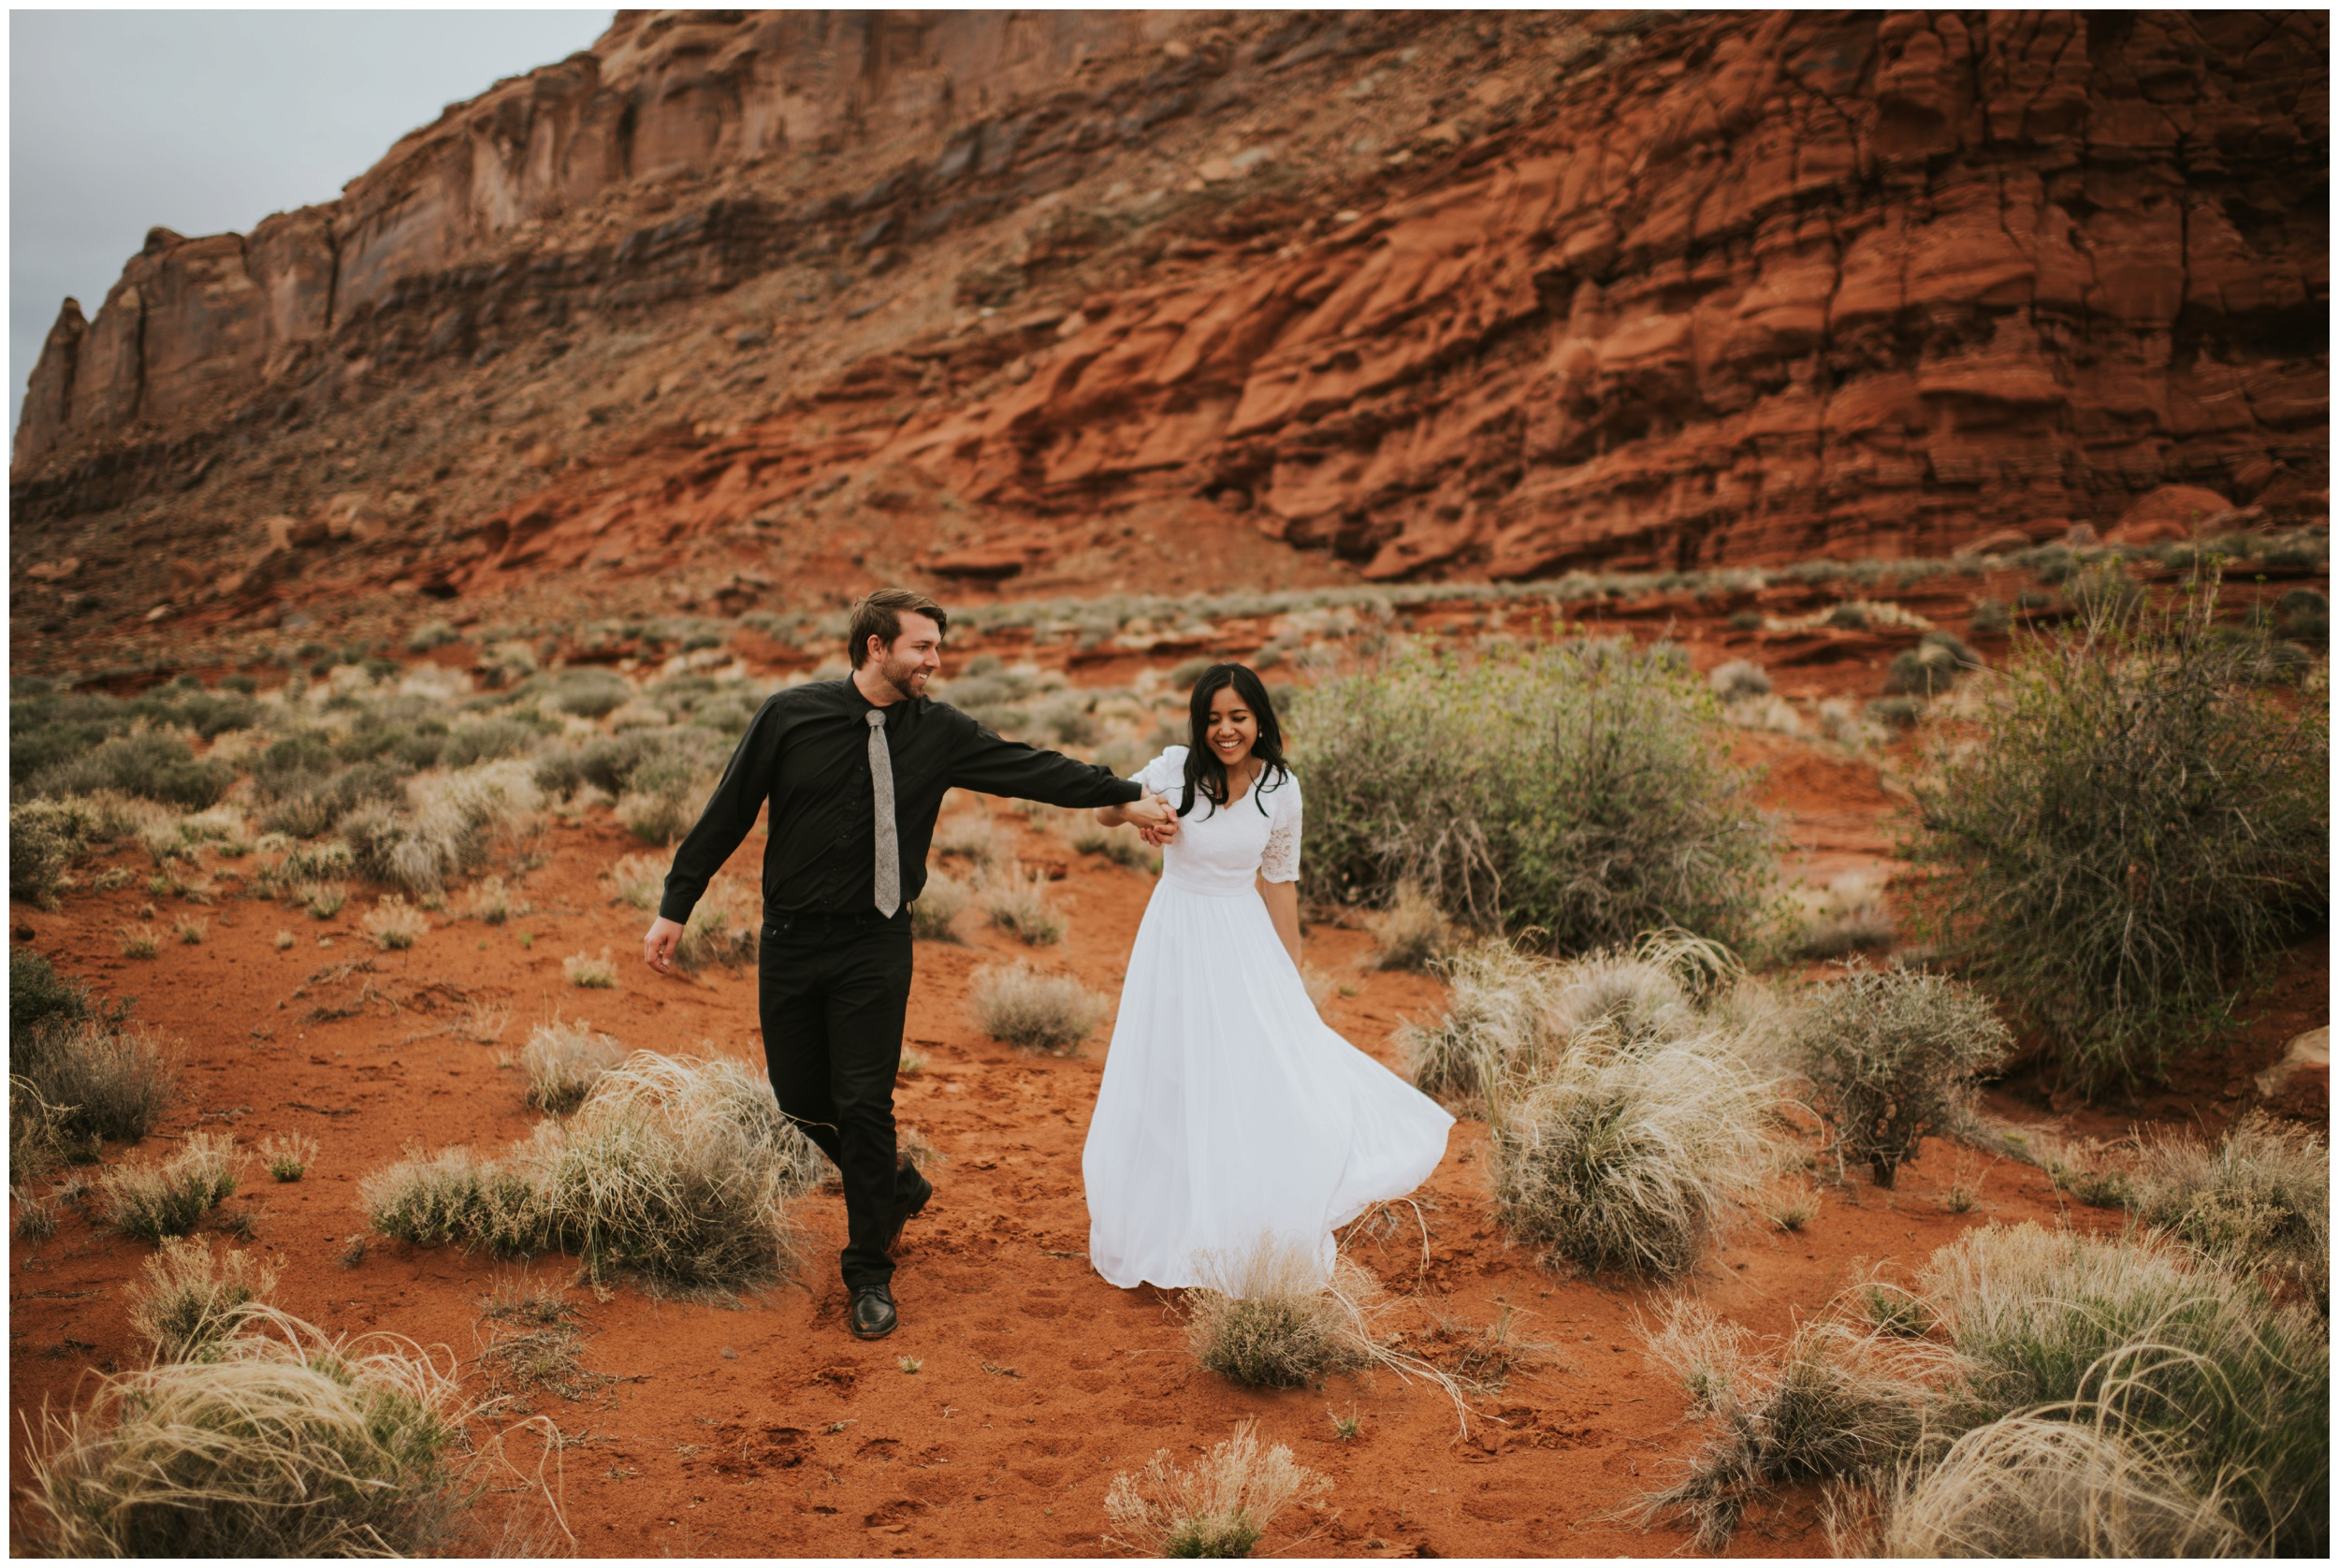 Bride and groom dancing and playing in a canyon |Moab Utah, Photographer www.riversandroadsphotography.com